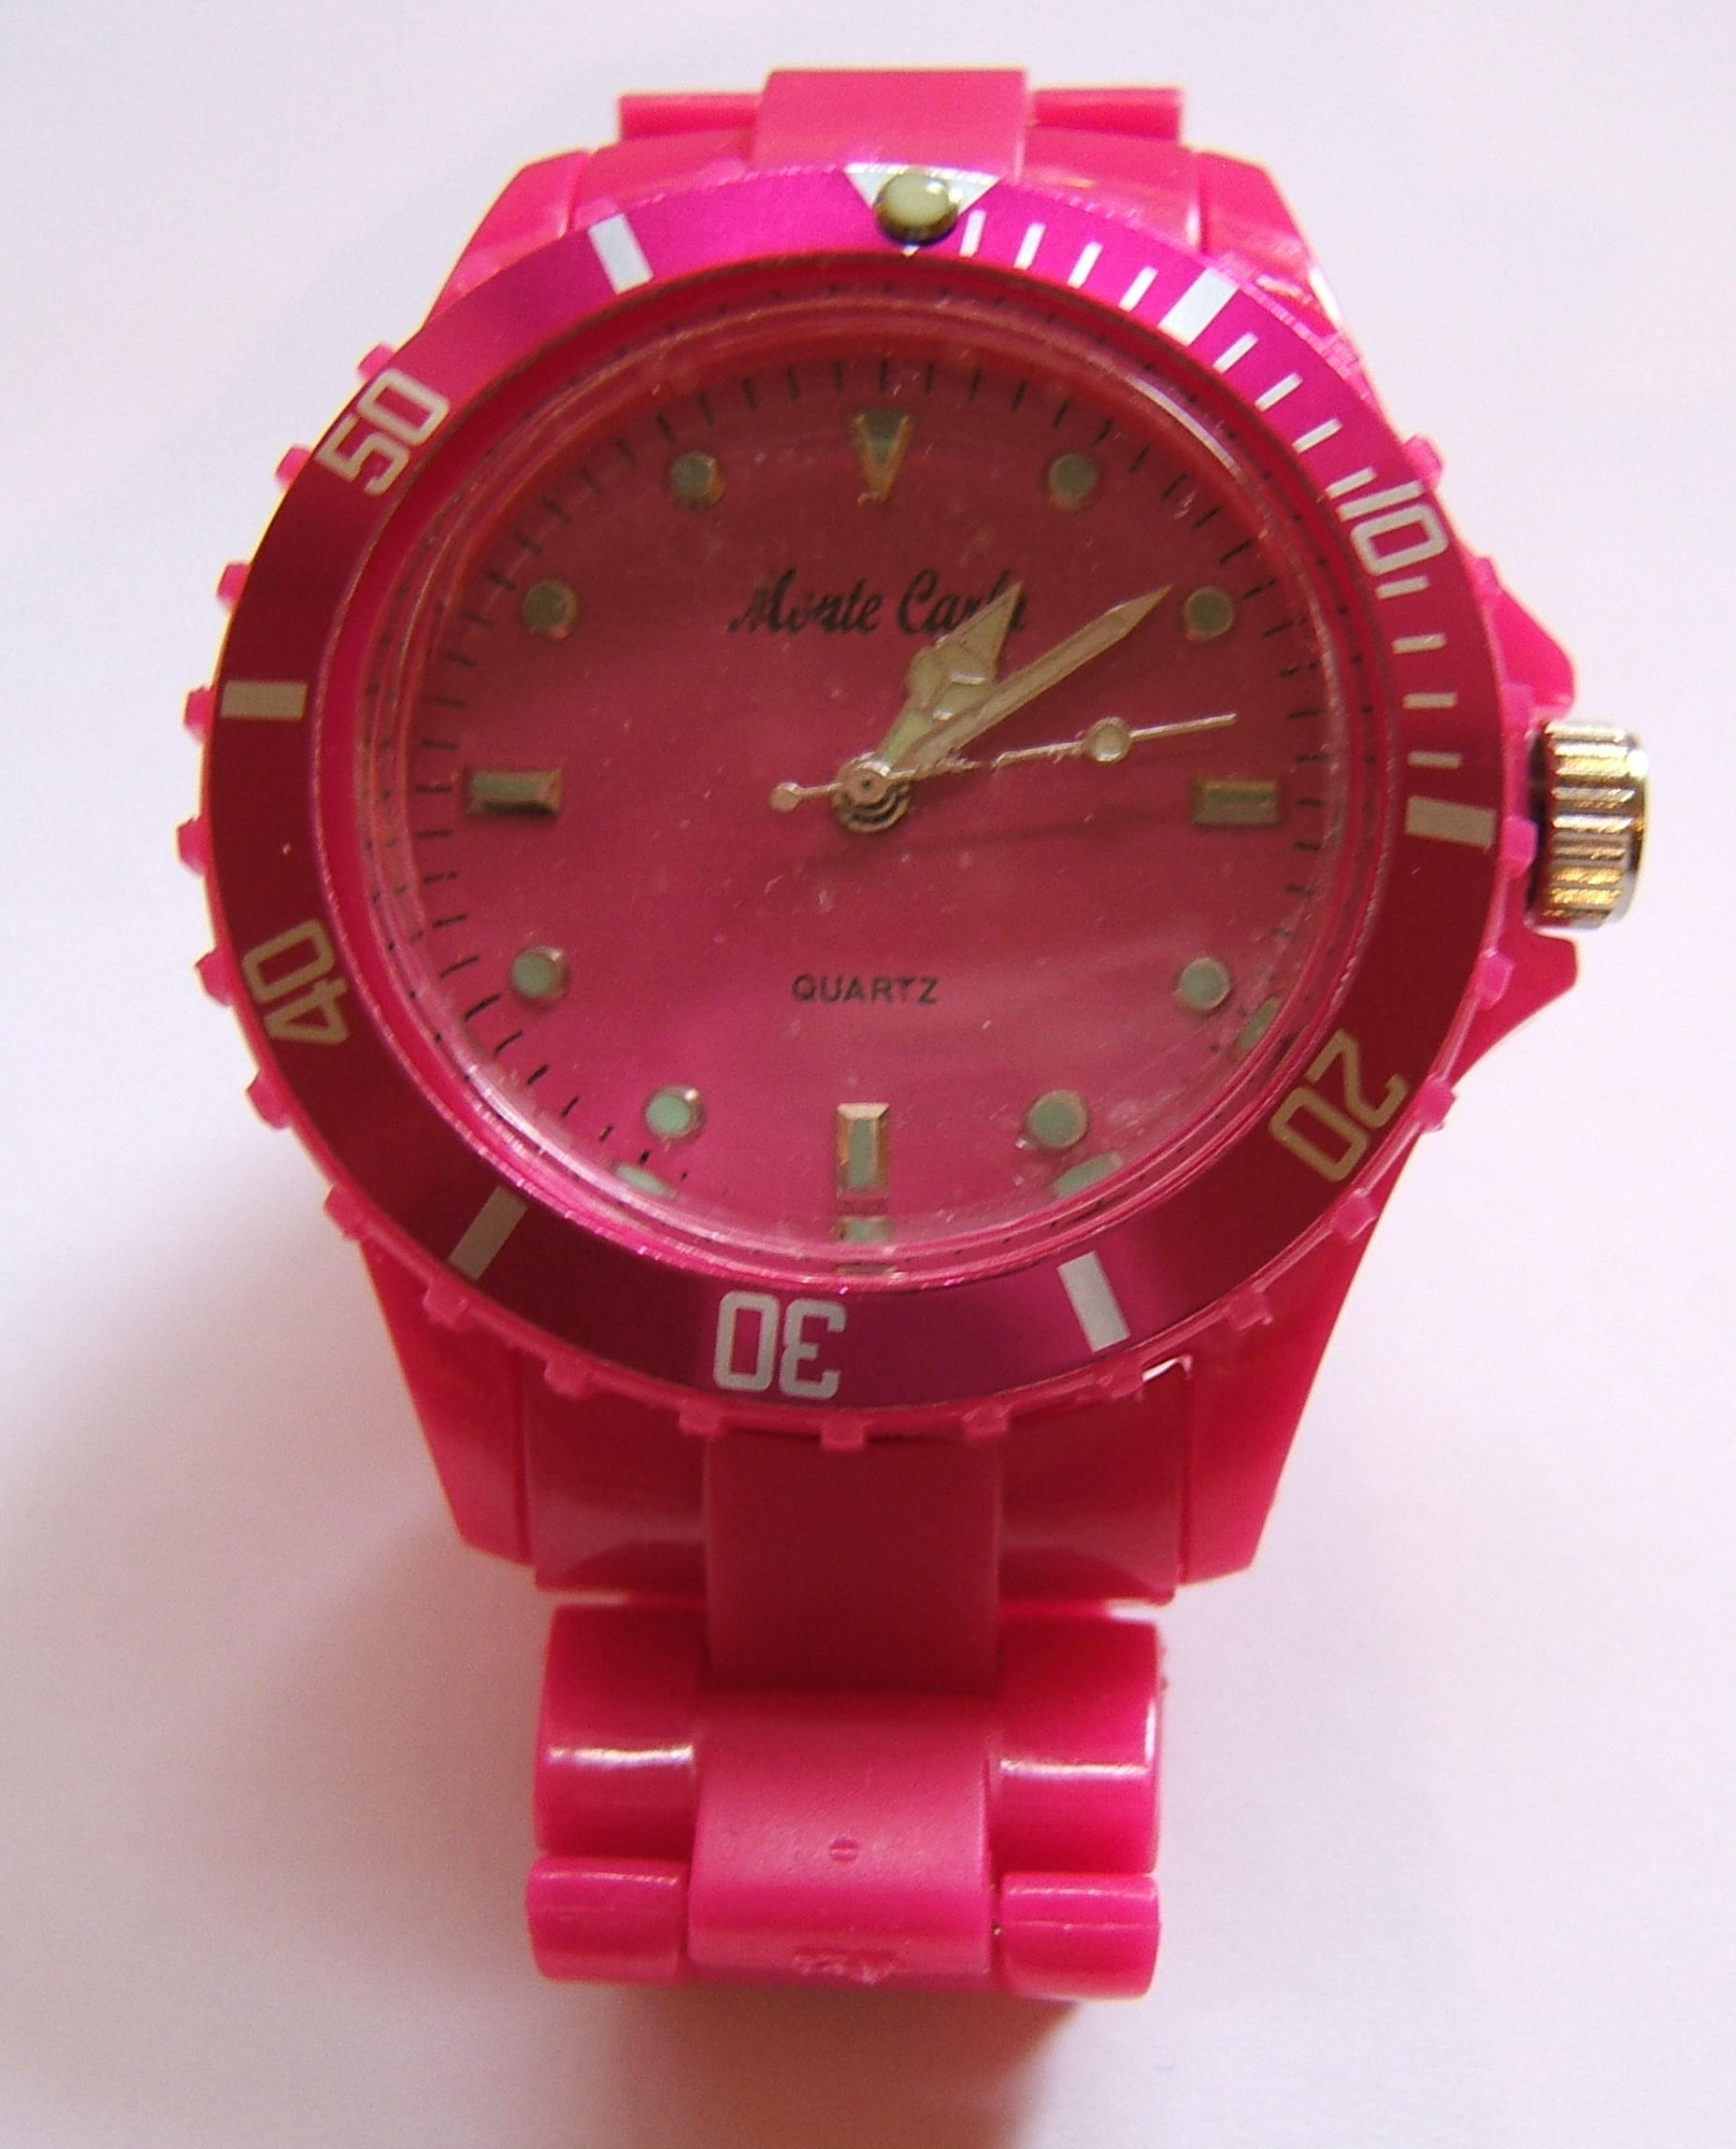 Monte Carlo Unisex Fashion Watch Pink